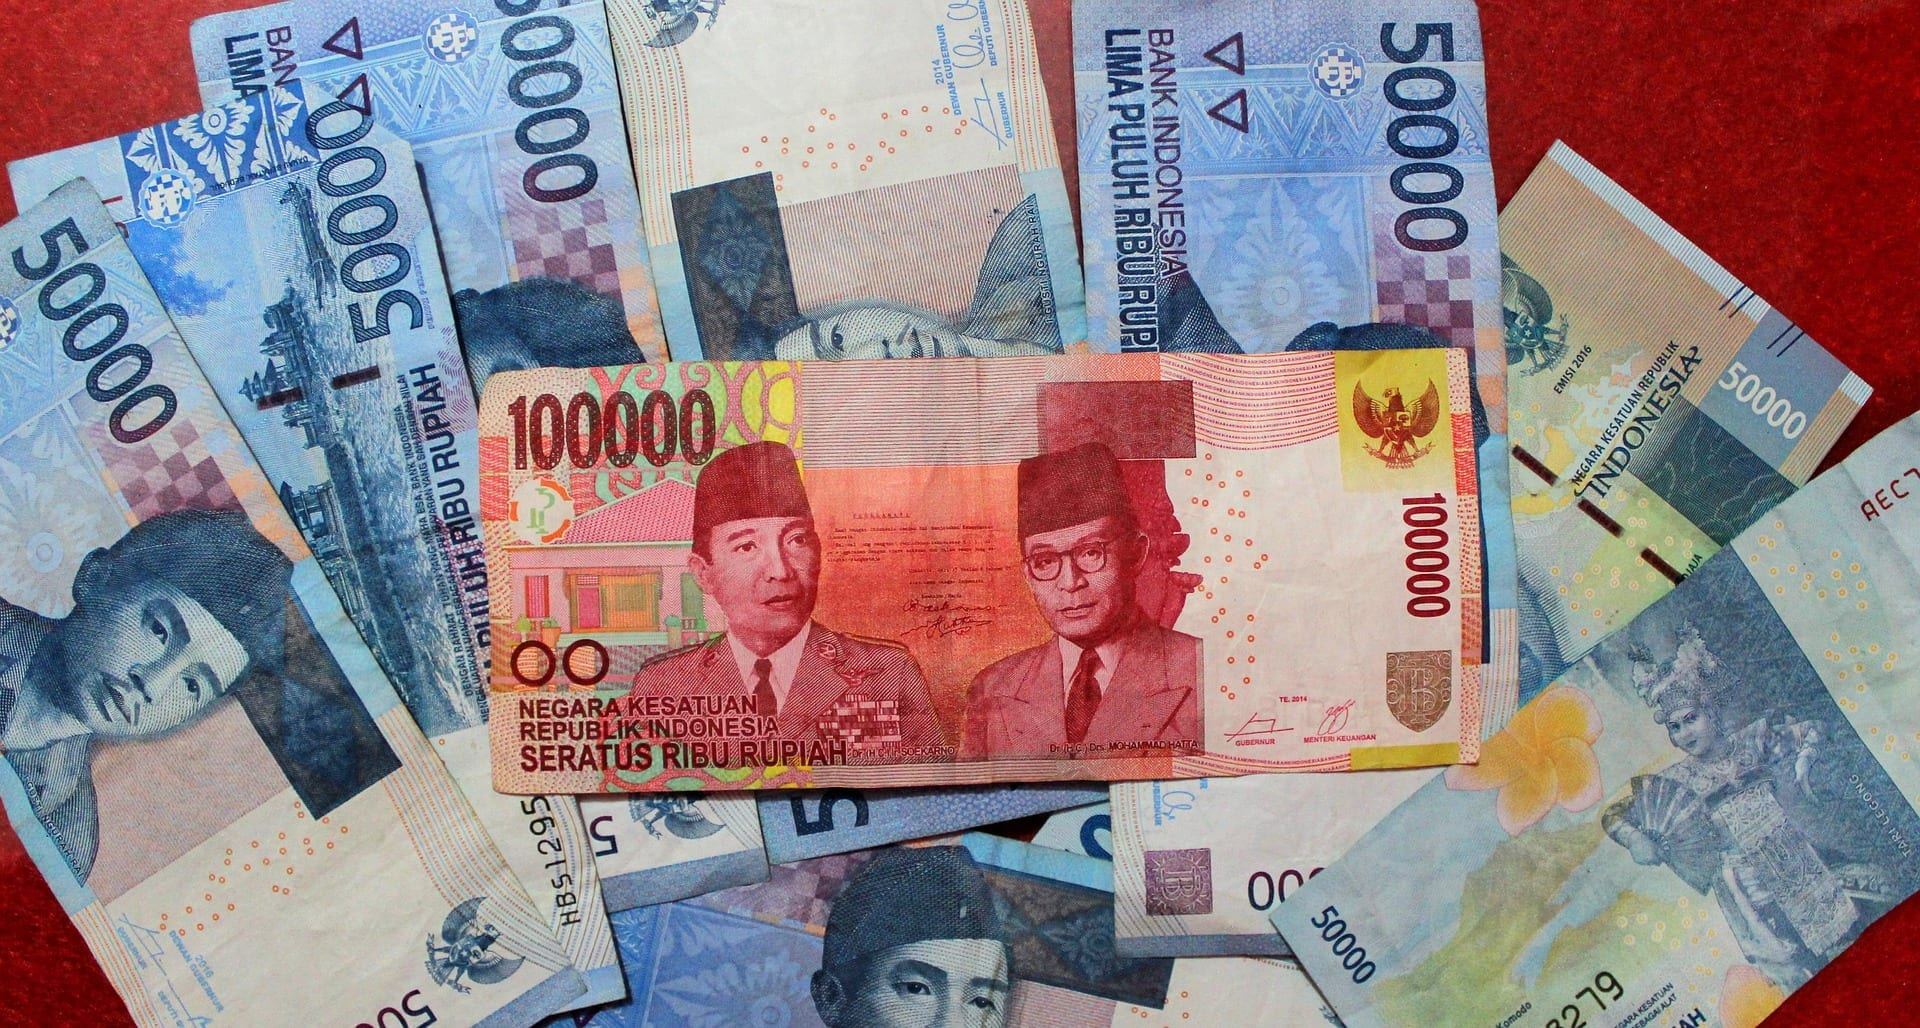 Rupiah bills of multiple denominations are stacked on a table